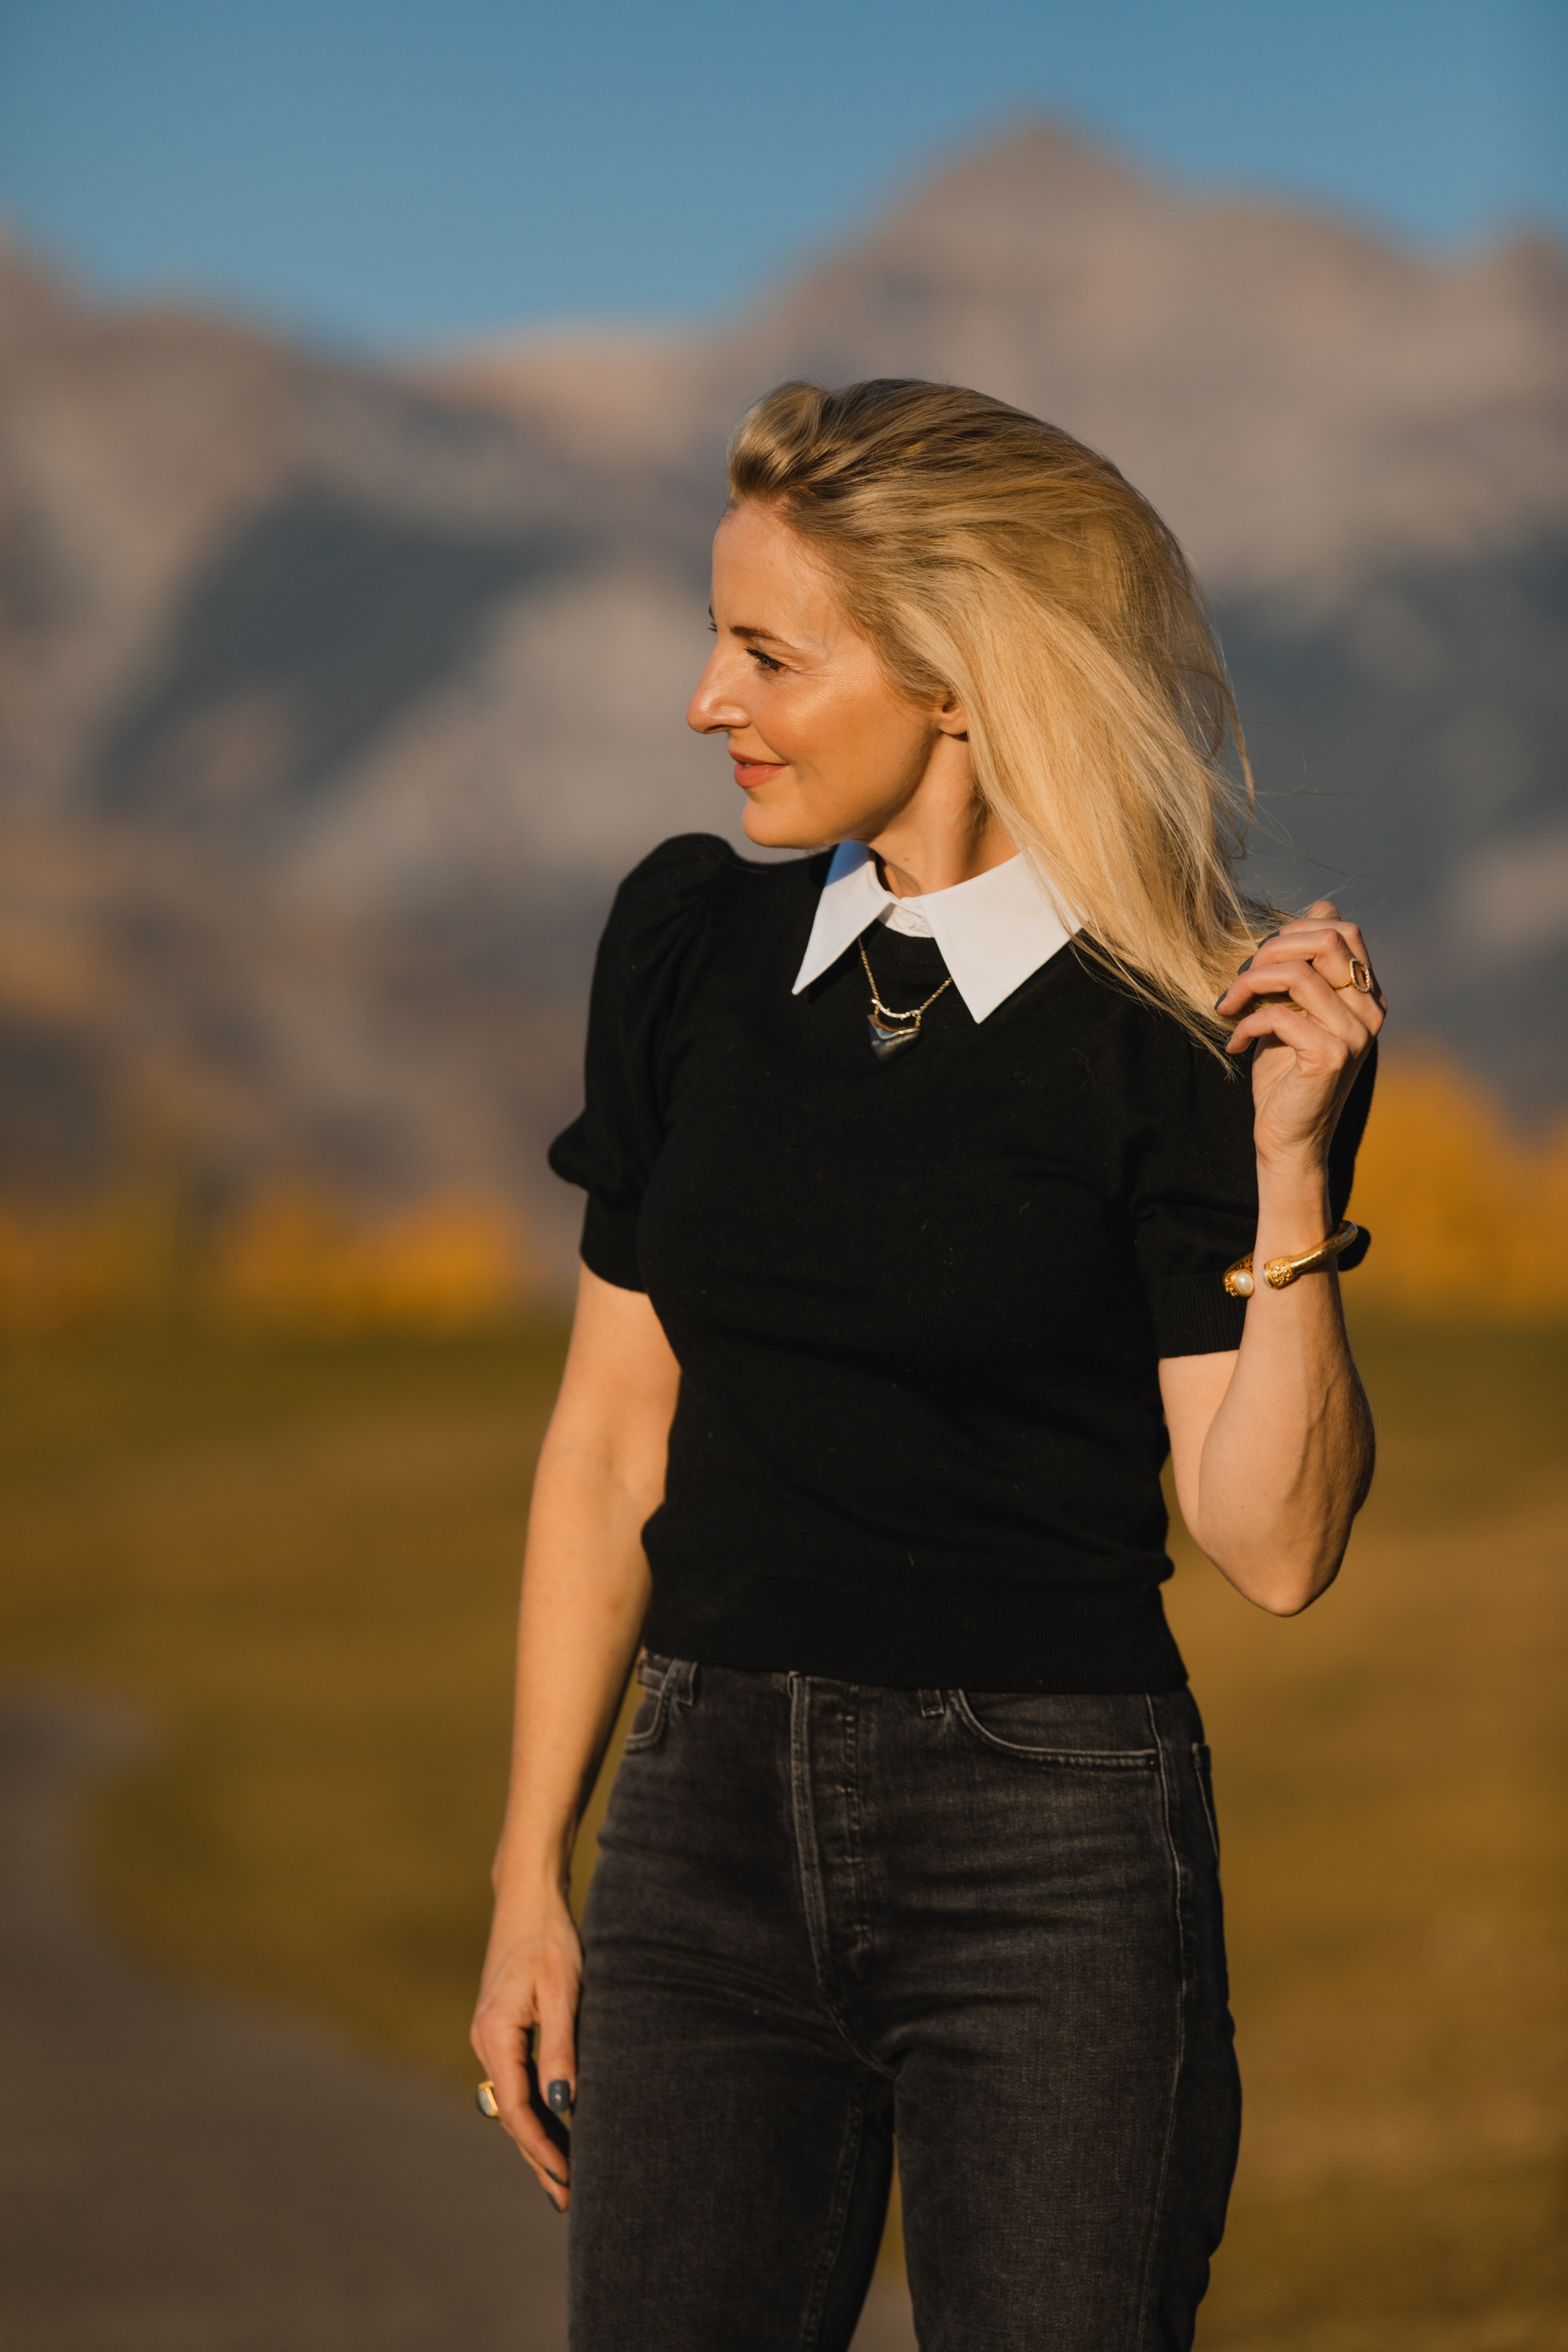 Layered Sweater, Erin Busbee of Busbee Style wearing a black puff shoulder layered sweater by Alice + Olivia with gray wash Agolde Nico jeans in Telluride, Colorado